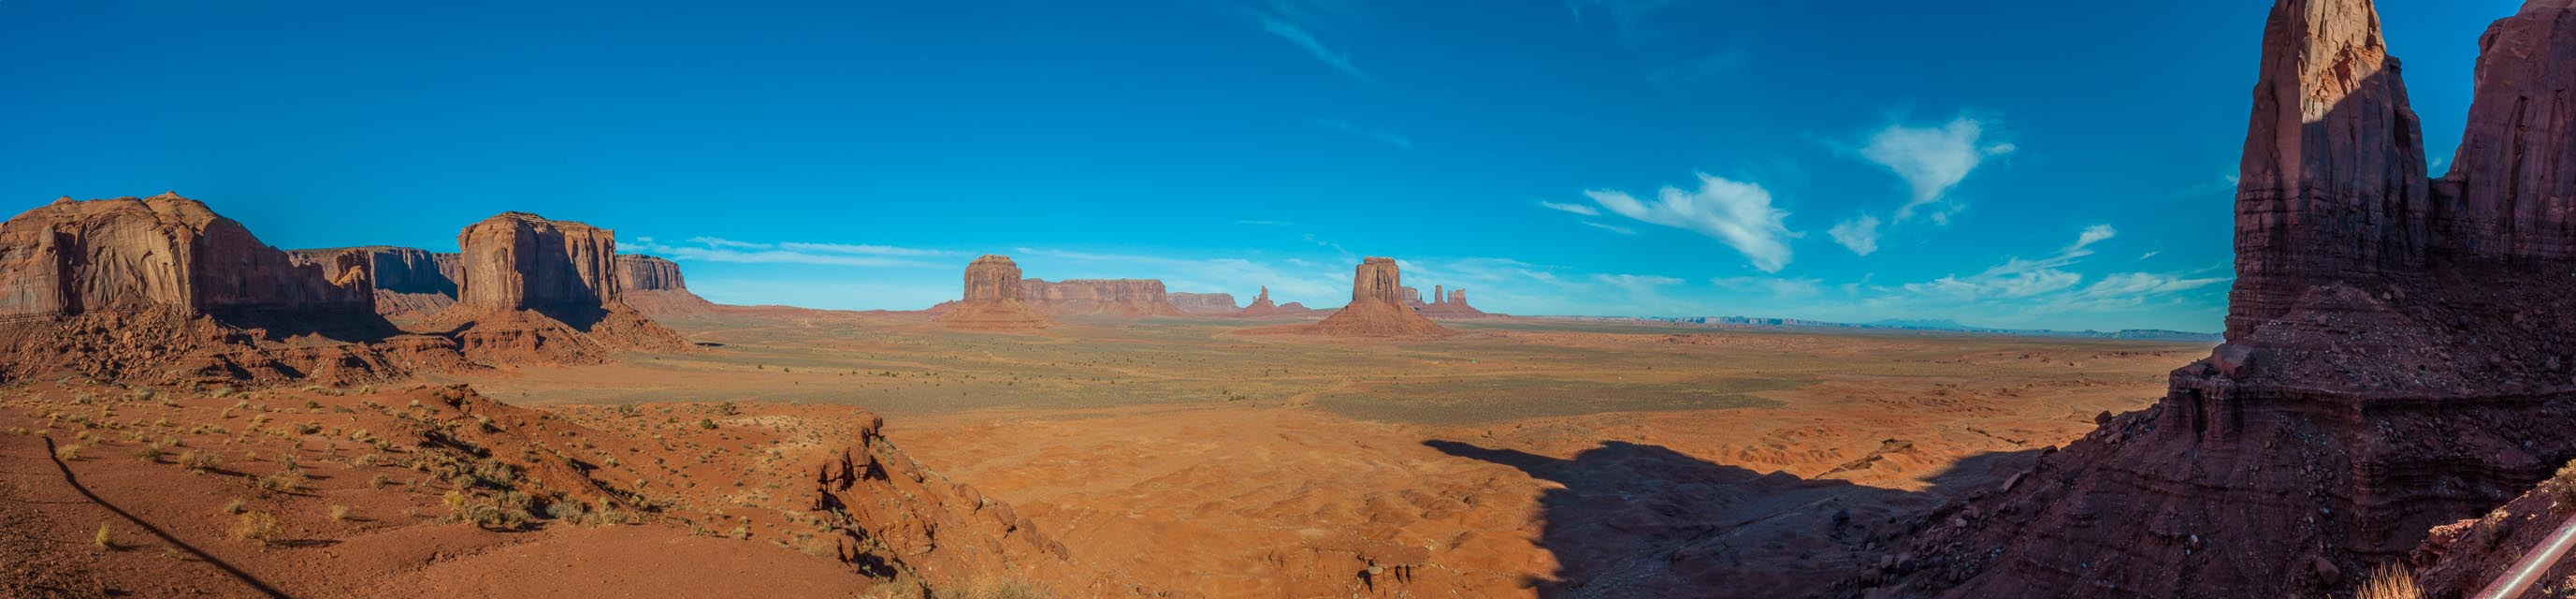 Monument Valley Navajo Tribal Park, Arizonia and Utah, USA